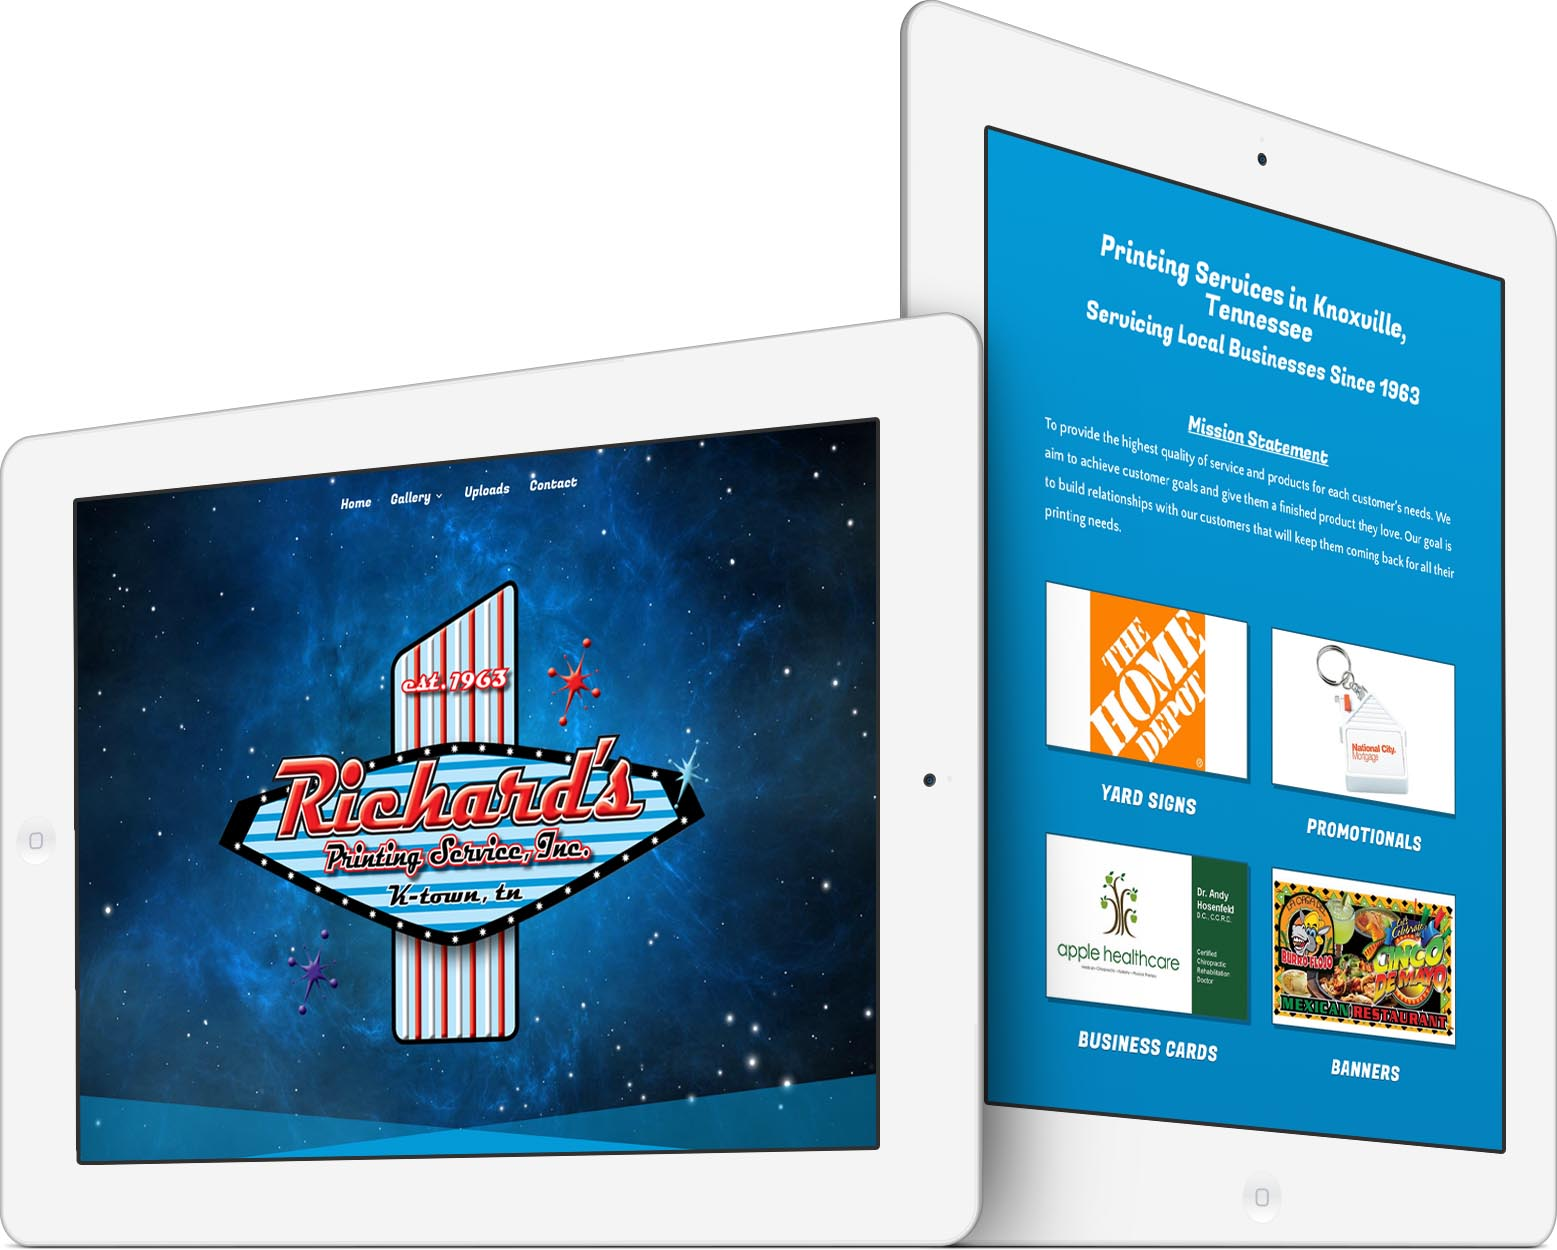 Richard's Printing Services Responsive Web Design